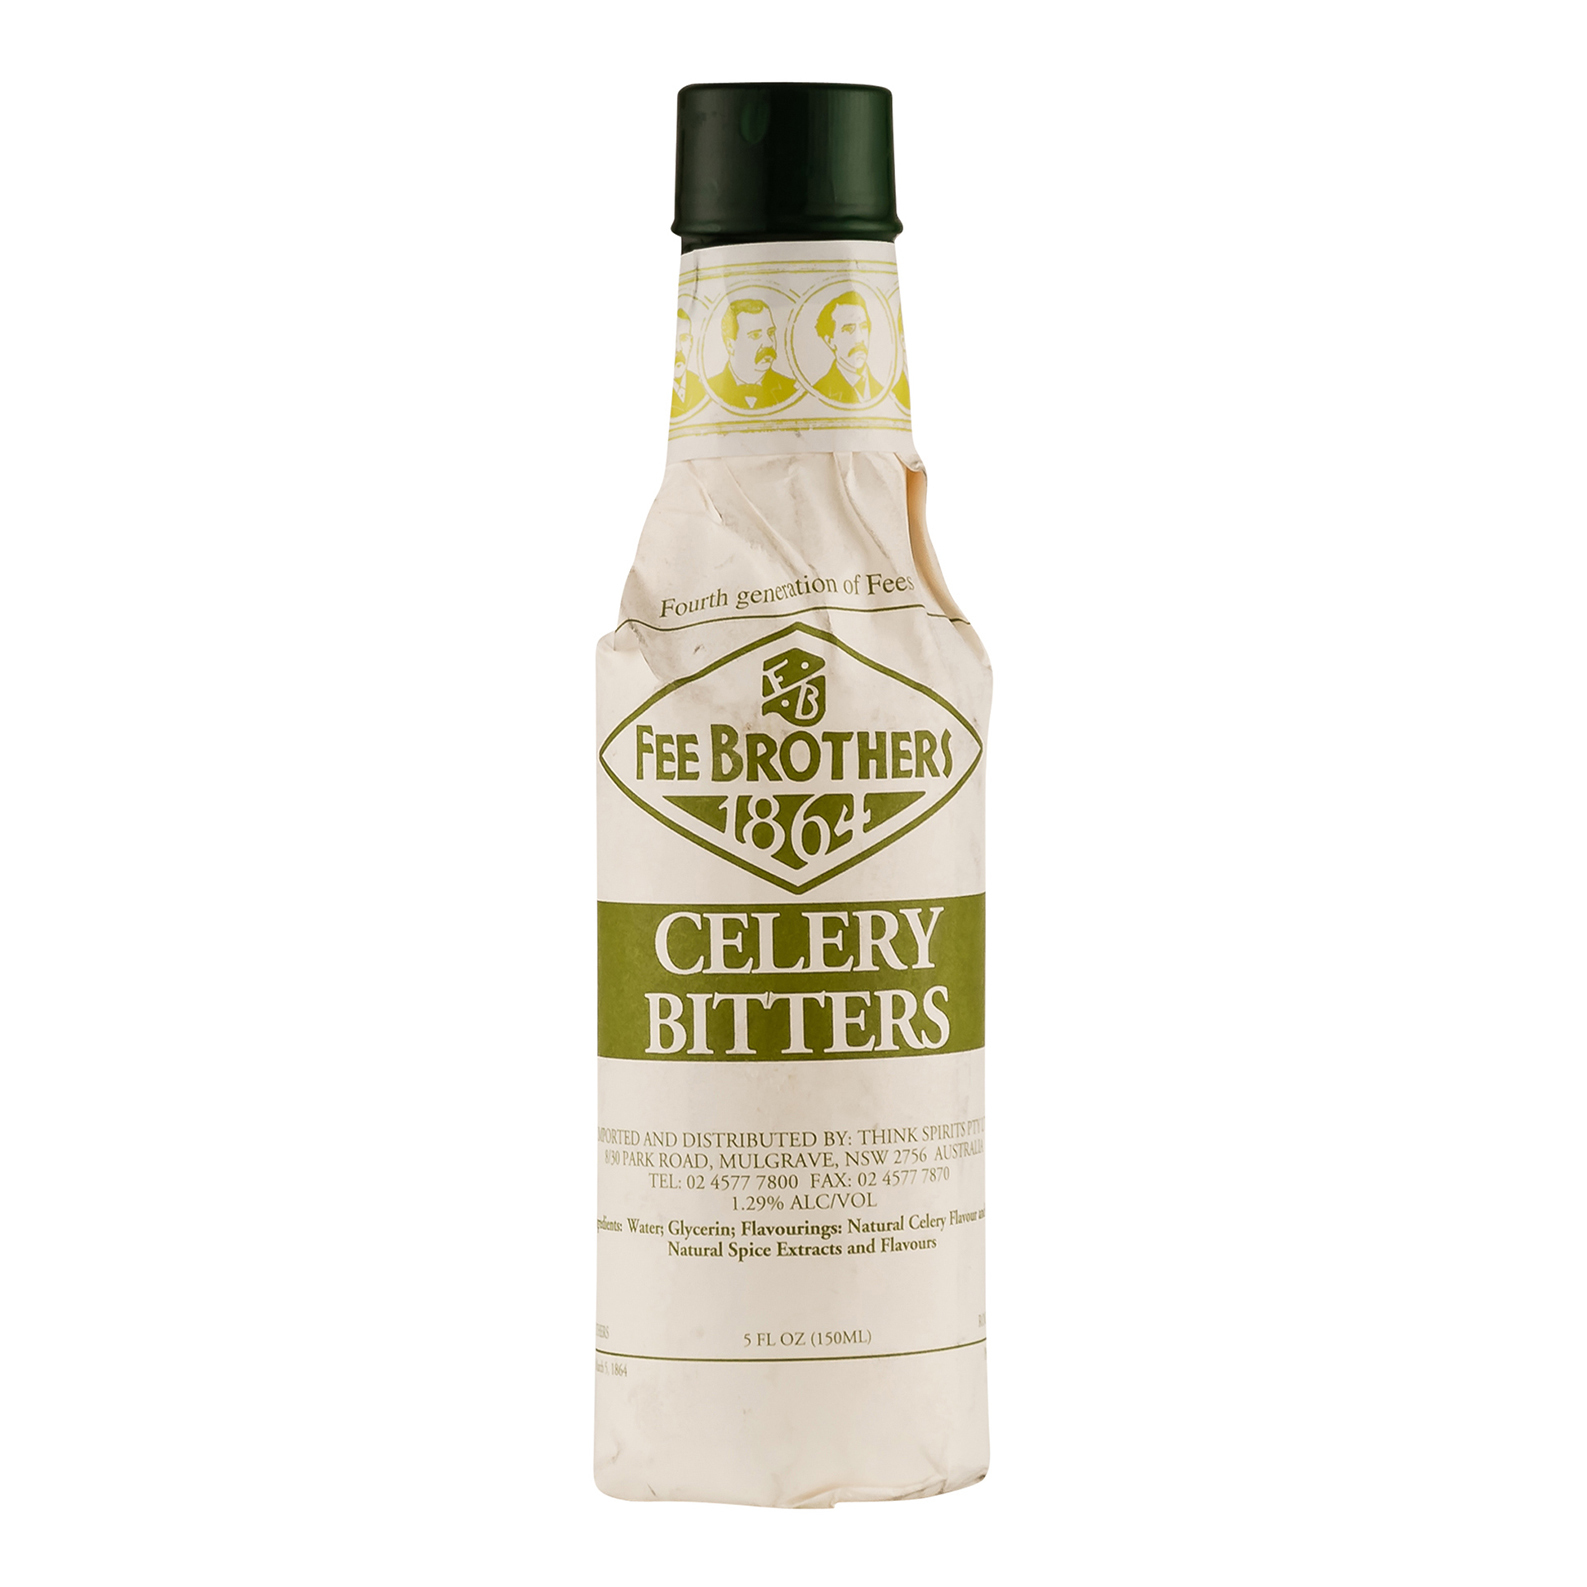 Fee Brothers 1864 Celery Bitters - Bitter Aromatico - 15cl - Fee Brothers